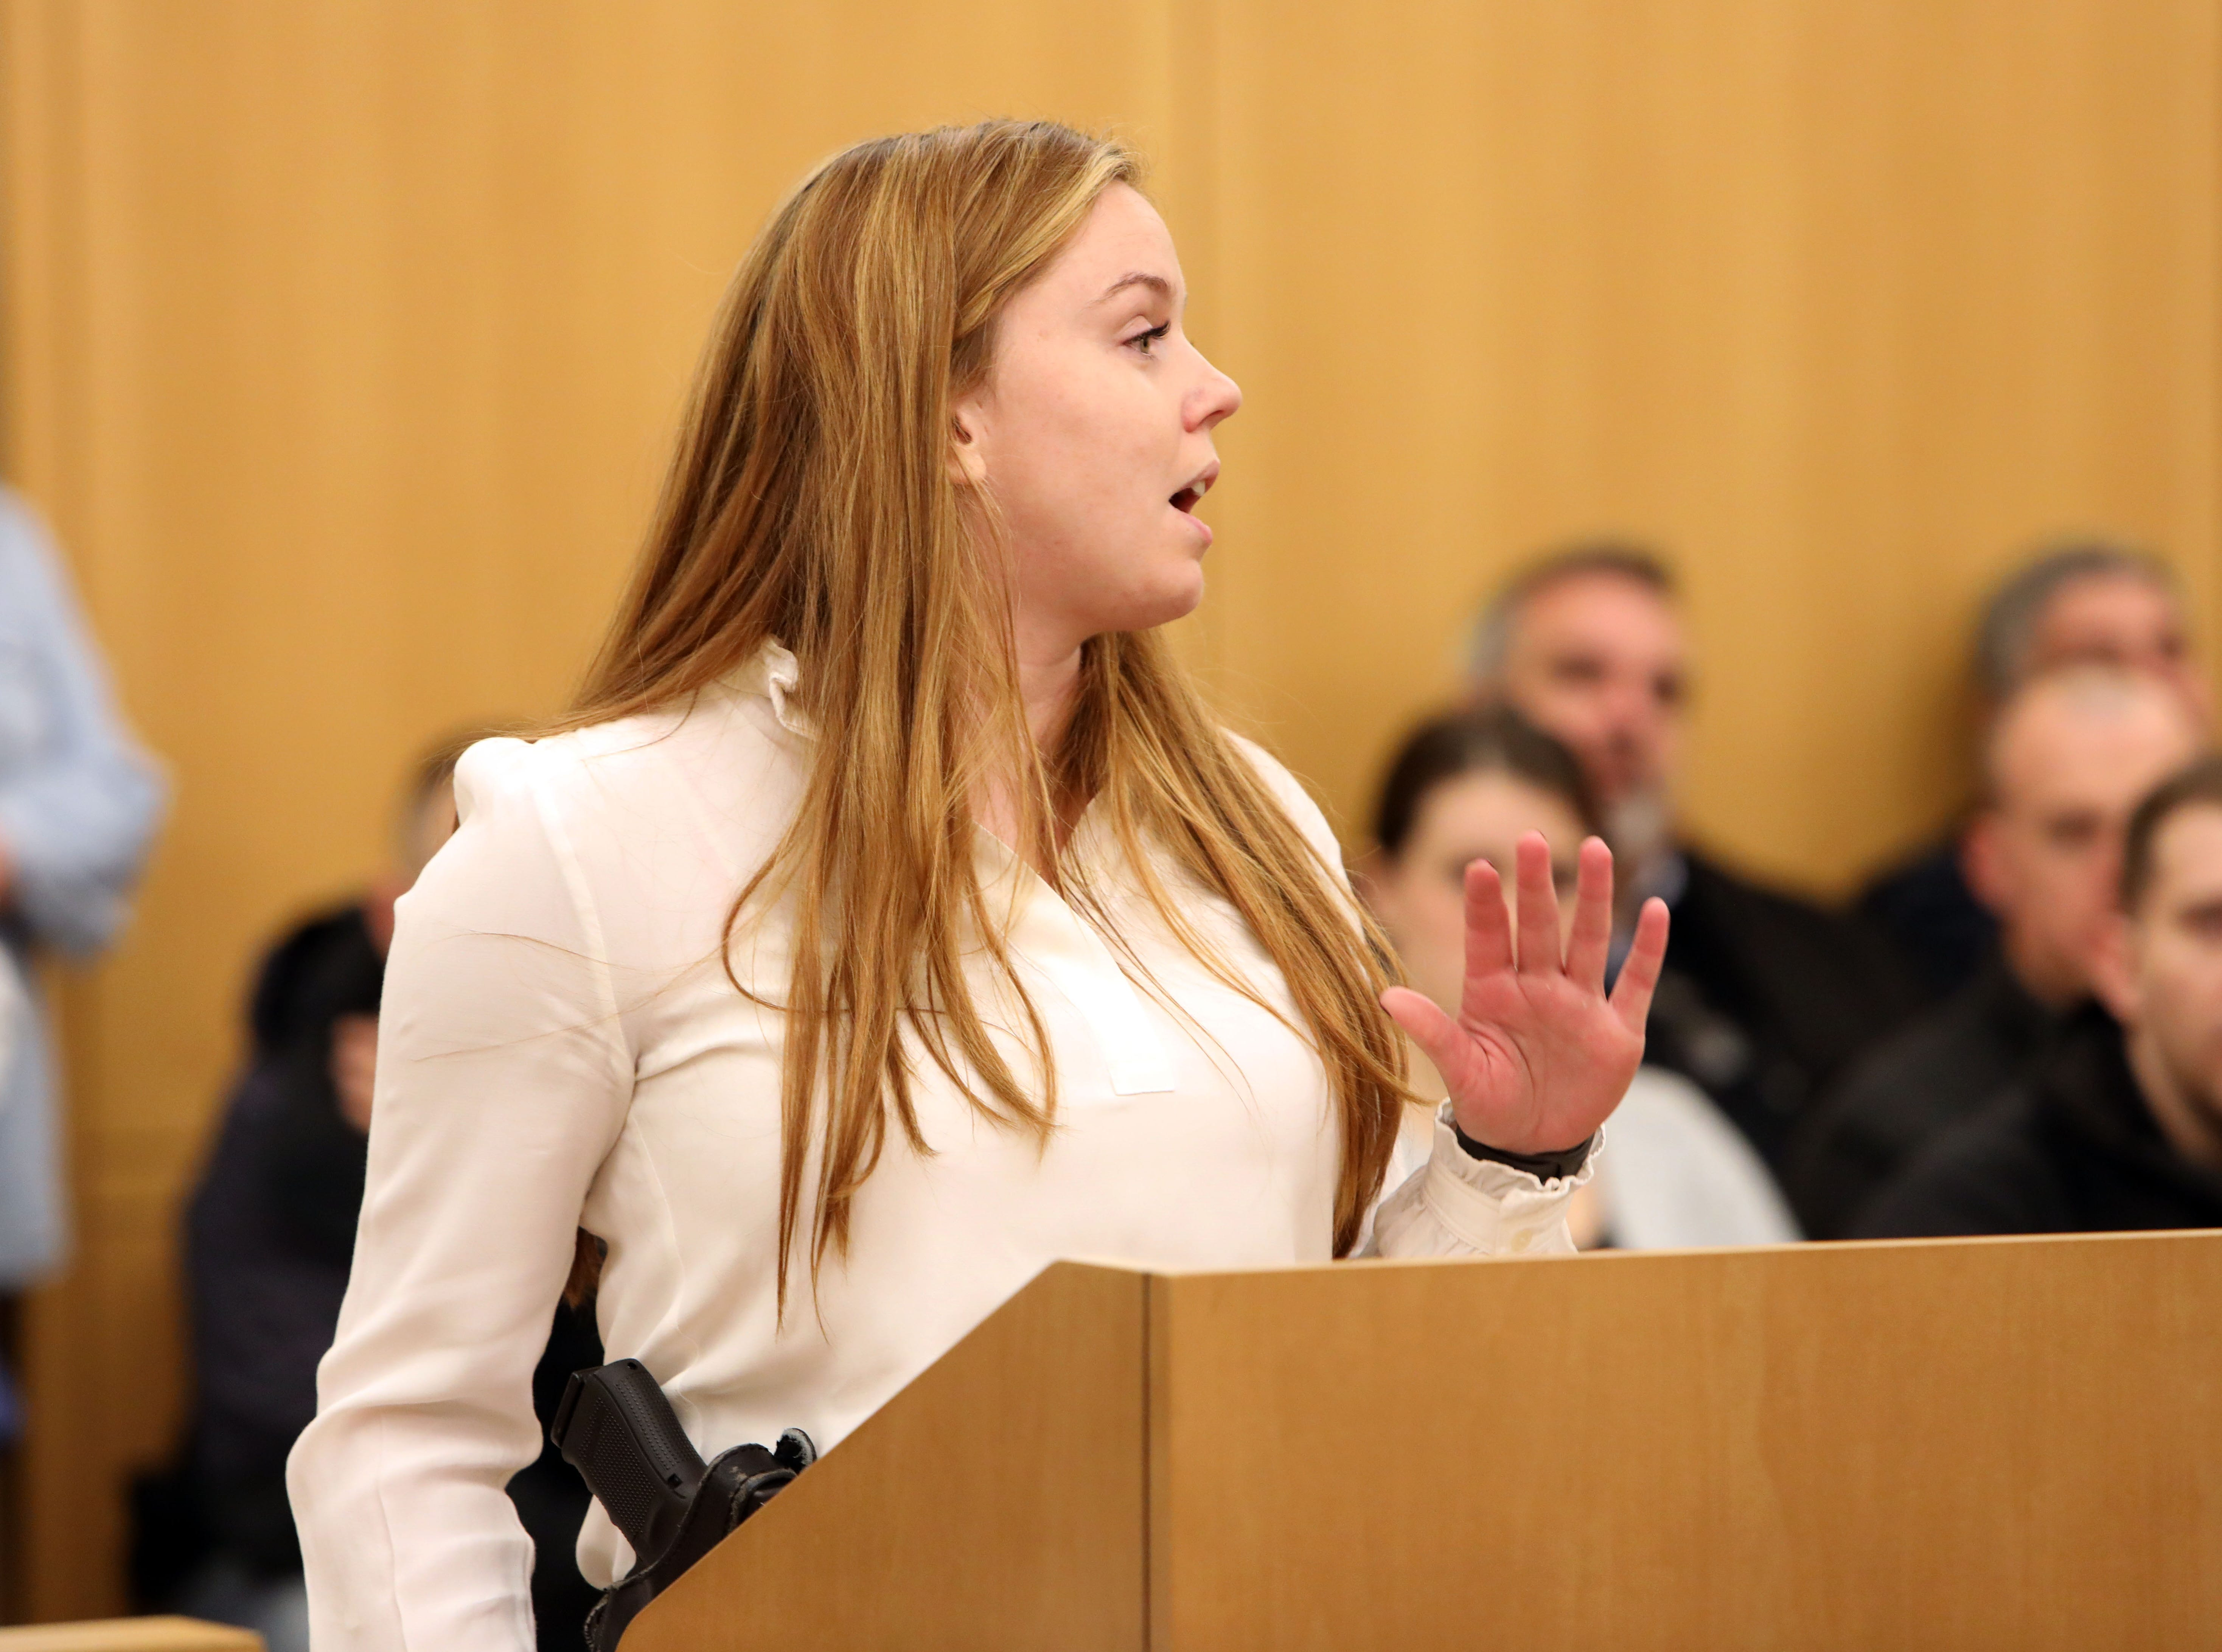 Yonkers police detective Kayla Maher addresses her shooter at the sentencing of Frank Valencia in Westchester County Court on Feb. 8, 2019. Valencia shot Maher, a police officer at the time, in Yonkers in 2017.